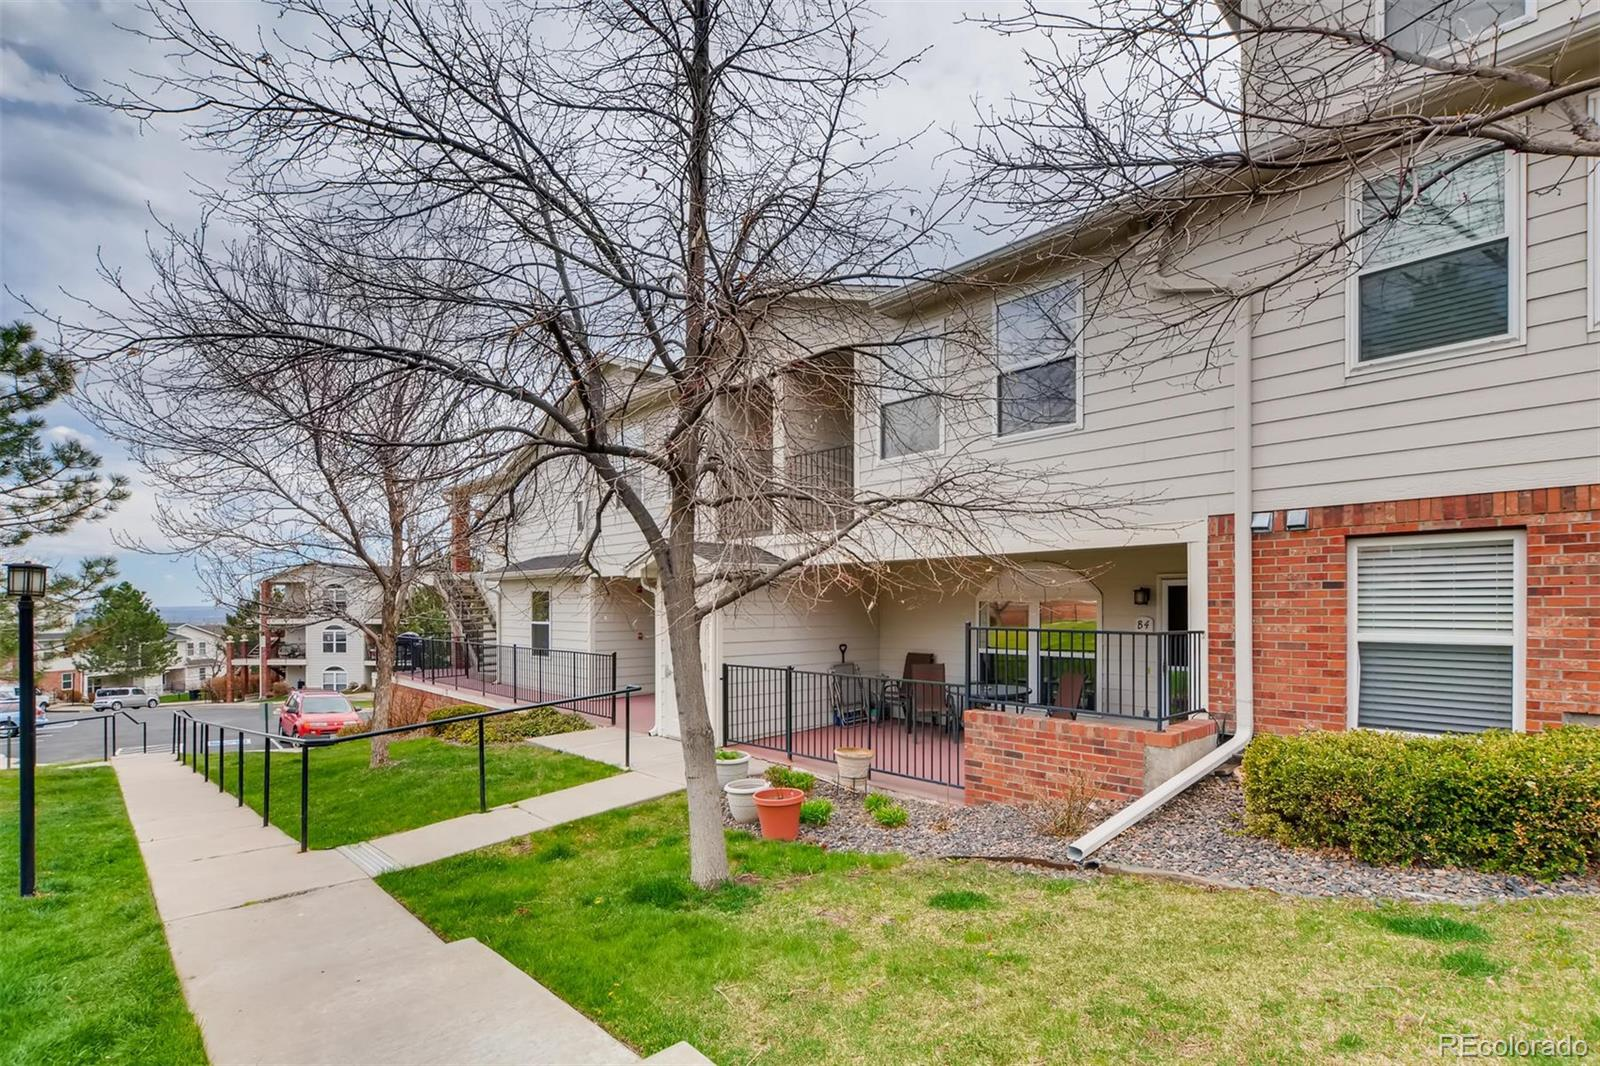 1662 S Deframe Street #B4, Lakewood, CO 80228 - Lakewood, CO real estate listing